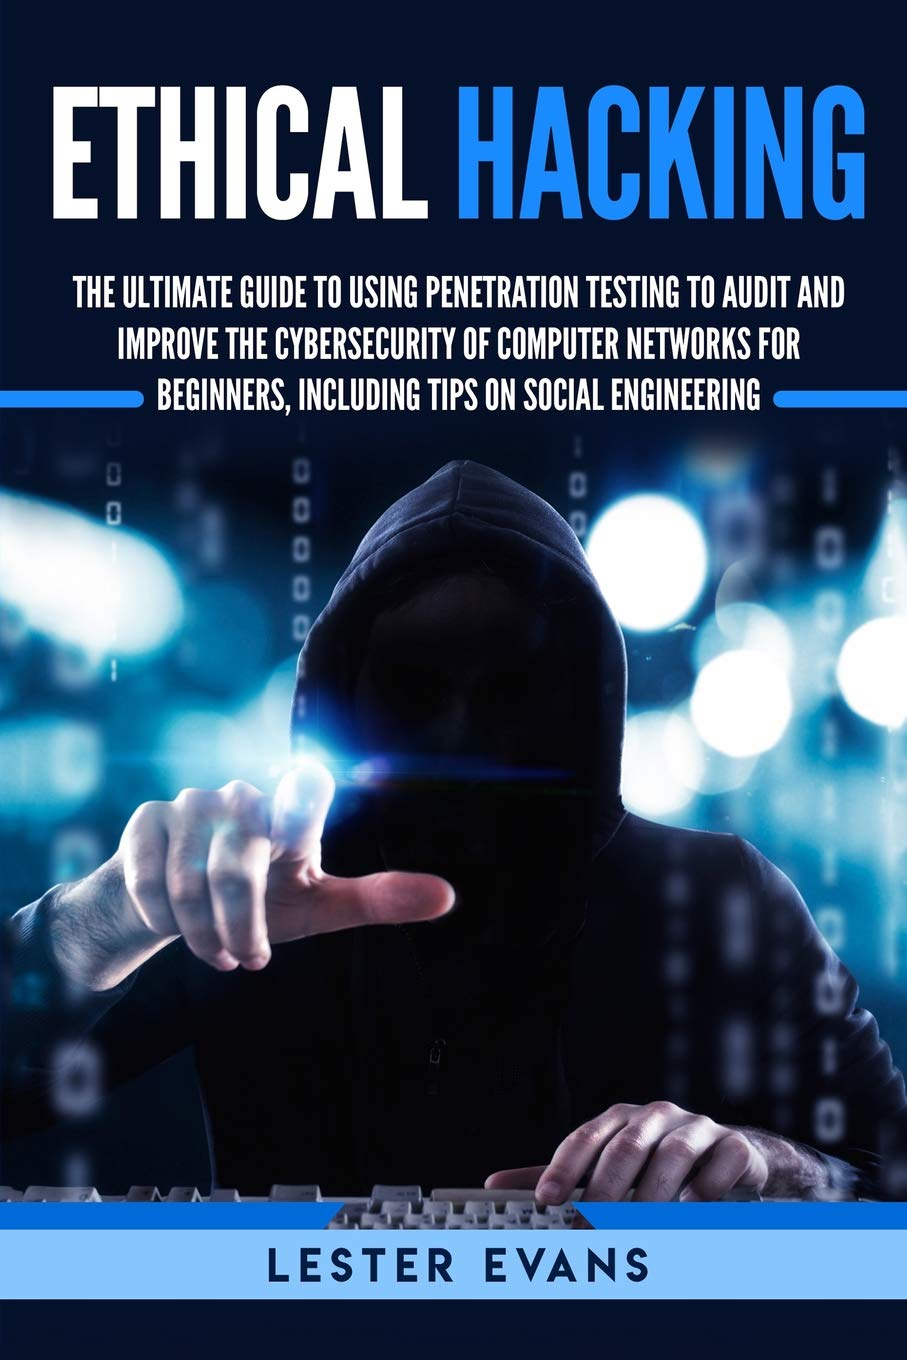 Ethical Hacking: The Ultimate Guide to Using Penetration Testing to Audit and Improve the Cybersecurity of Computer Networks for Beginners, Including Tips on Social Engineering